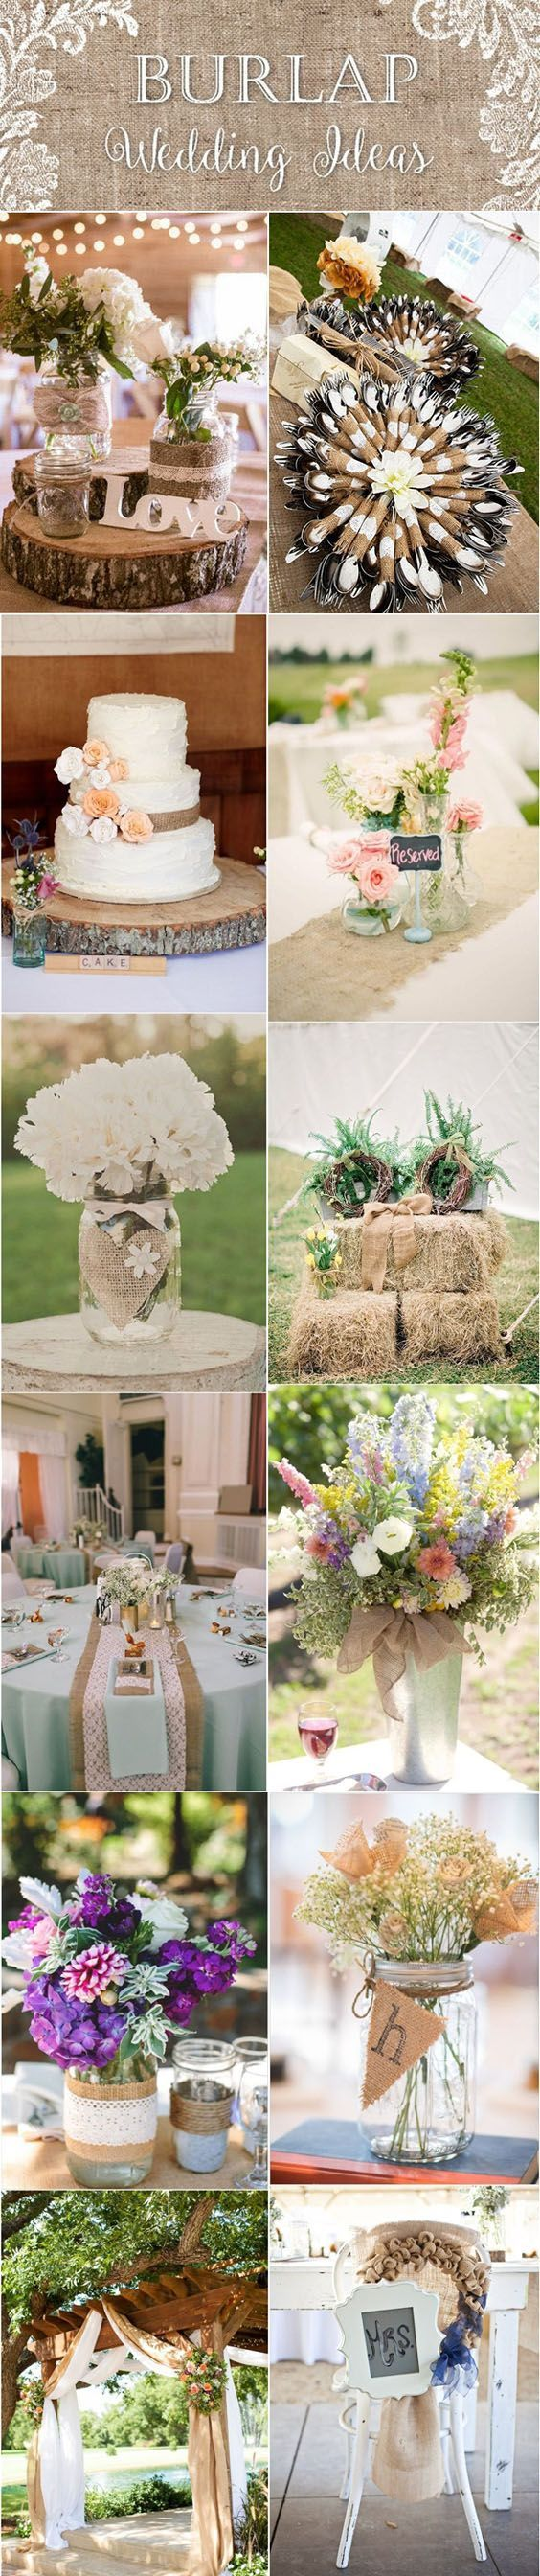 ideas for rustic wedding reception%0A Top    Rustic Wedding Themes  u     Ideas for       Part I